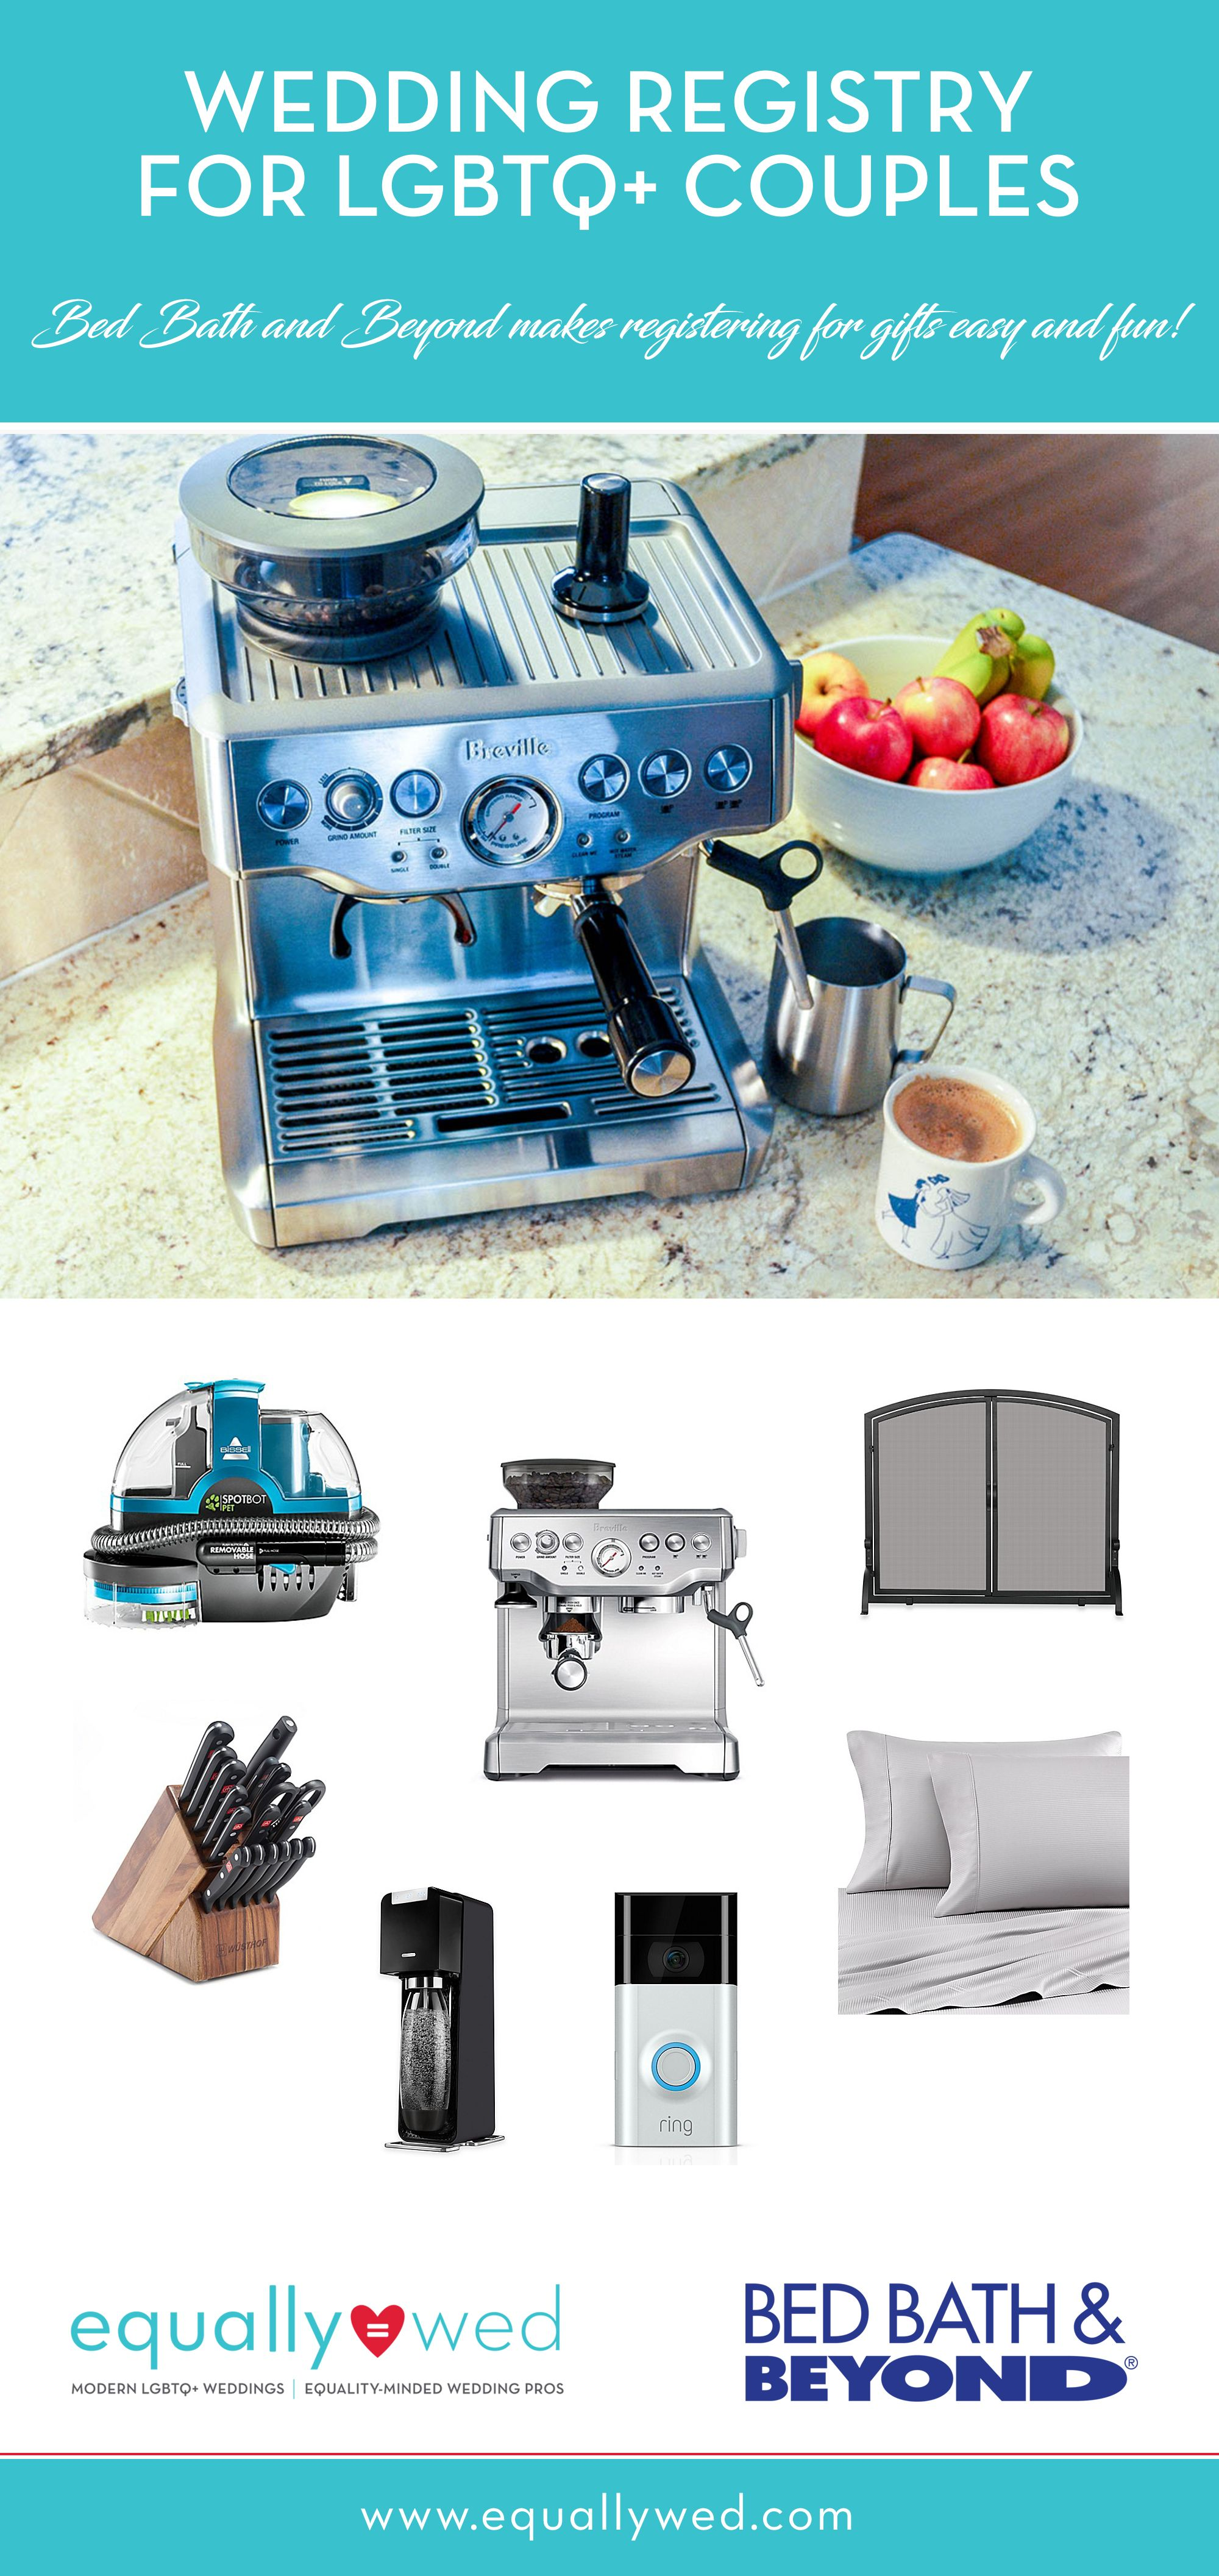 Our wedding registry with Bed Bath & Beyond Bed & bath